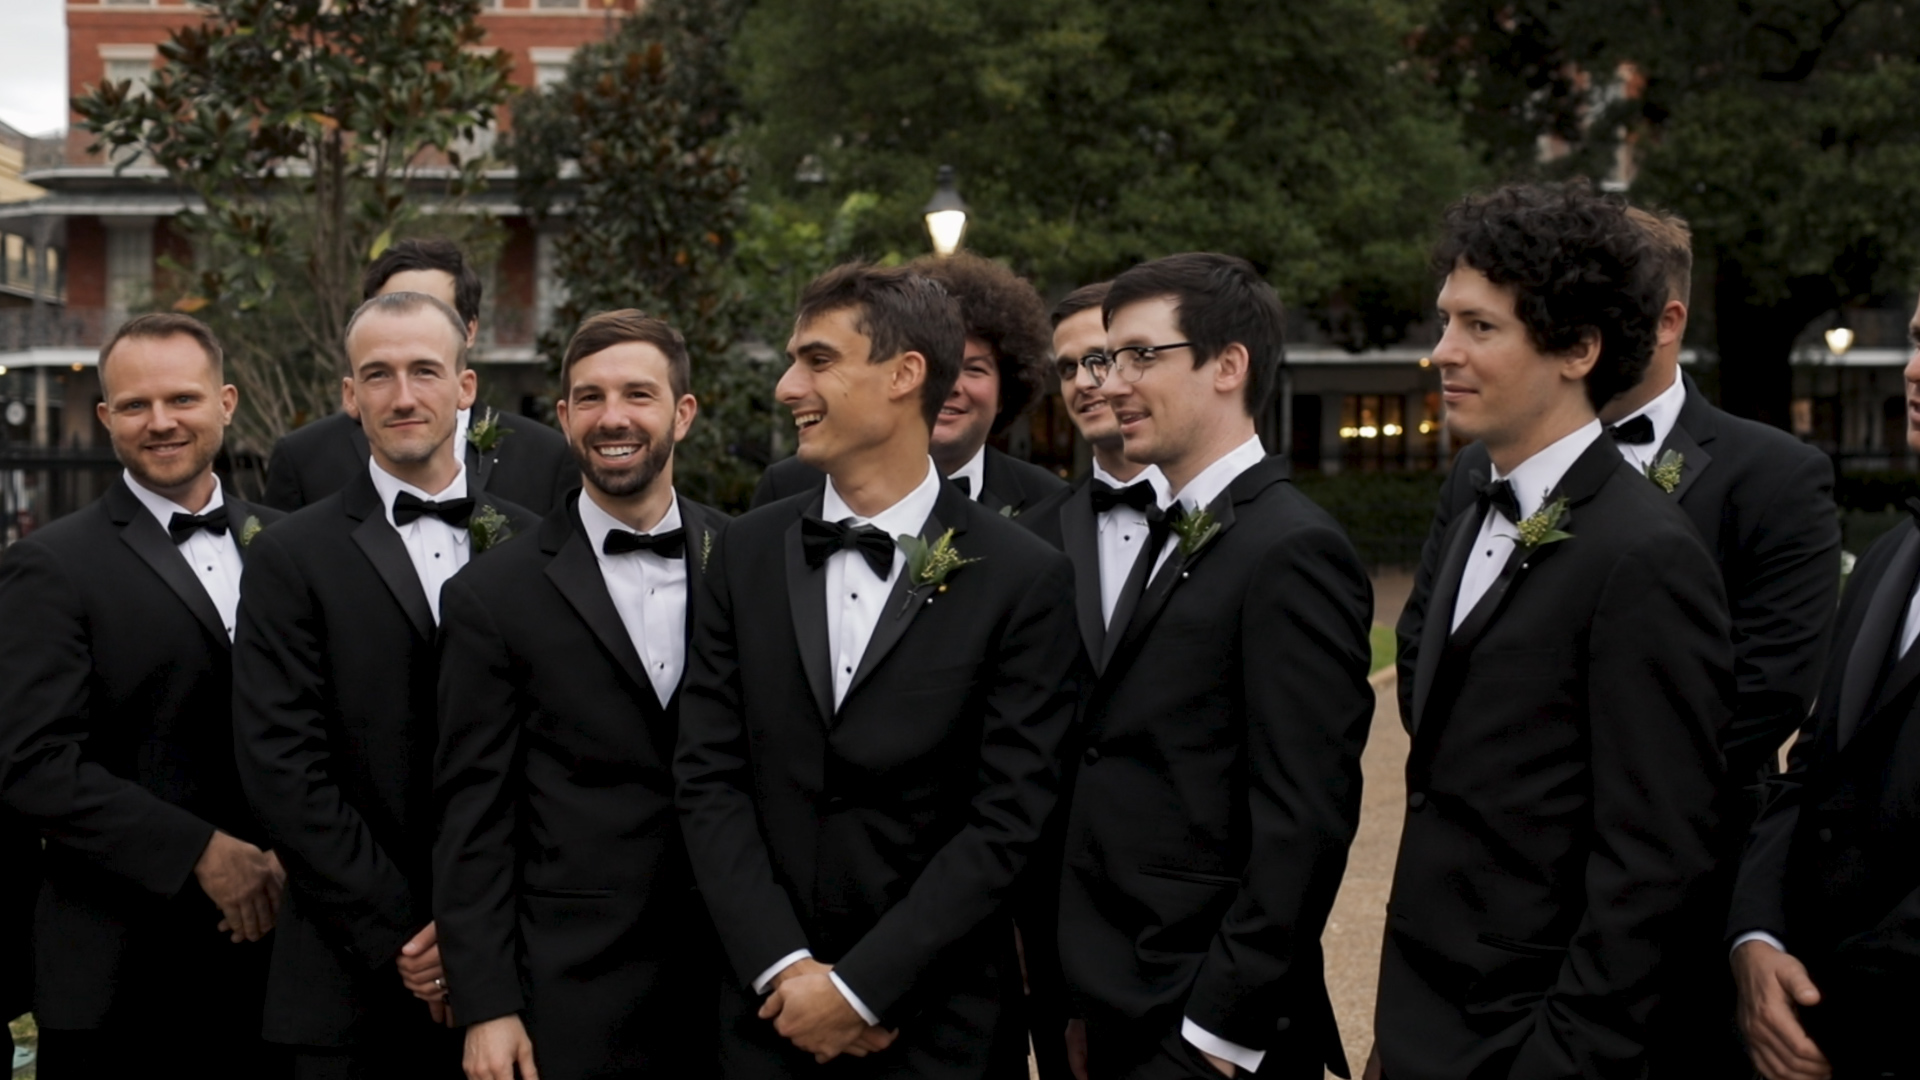 New Orleans Wedding Videography_Marianne and Clark_Groomsmen pictures